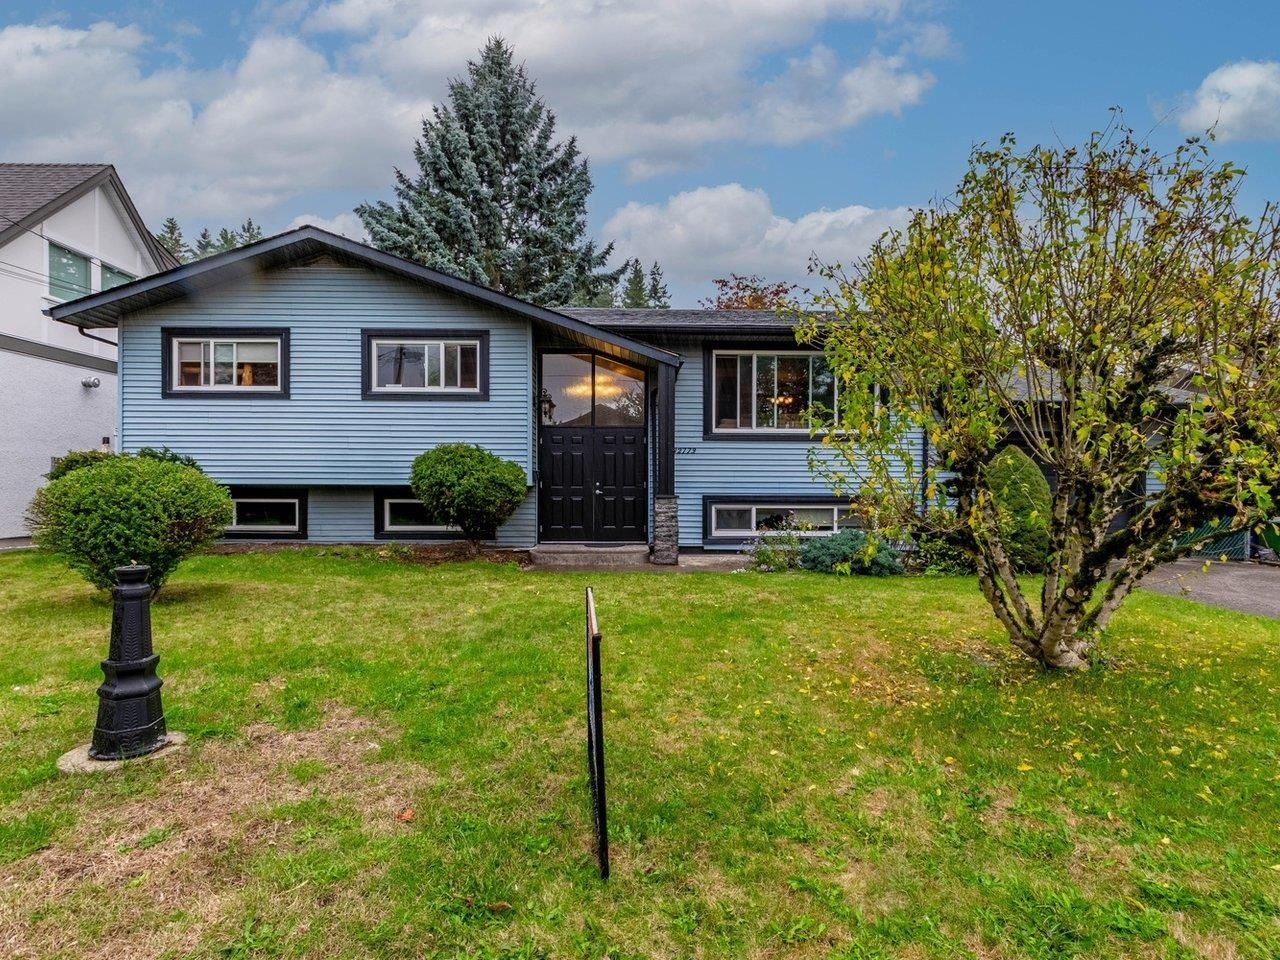 Main Photo: 32773 BOULT Avenue in Abbotsford: Abbotsford West House for sale : MLS®# R2623174